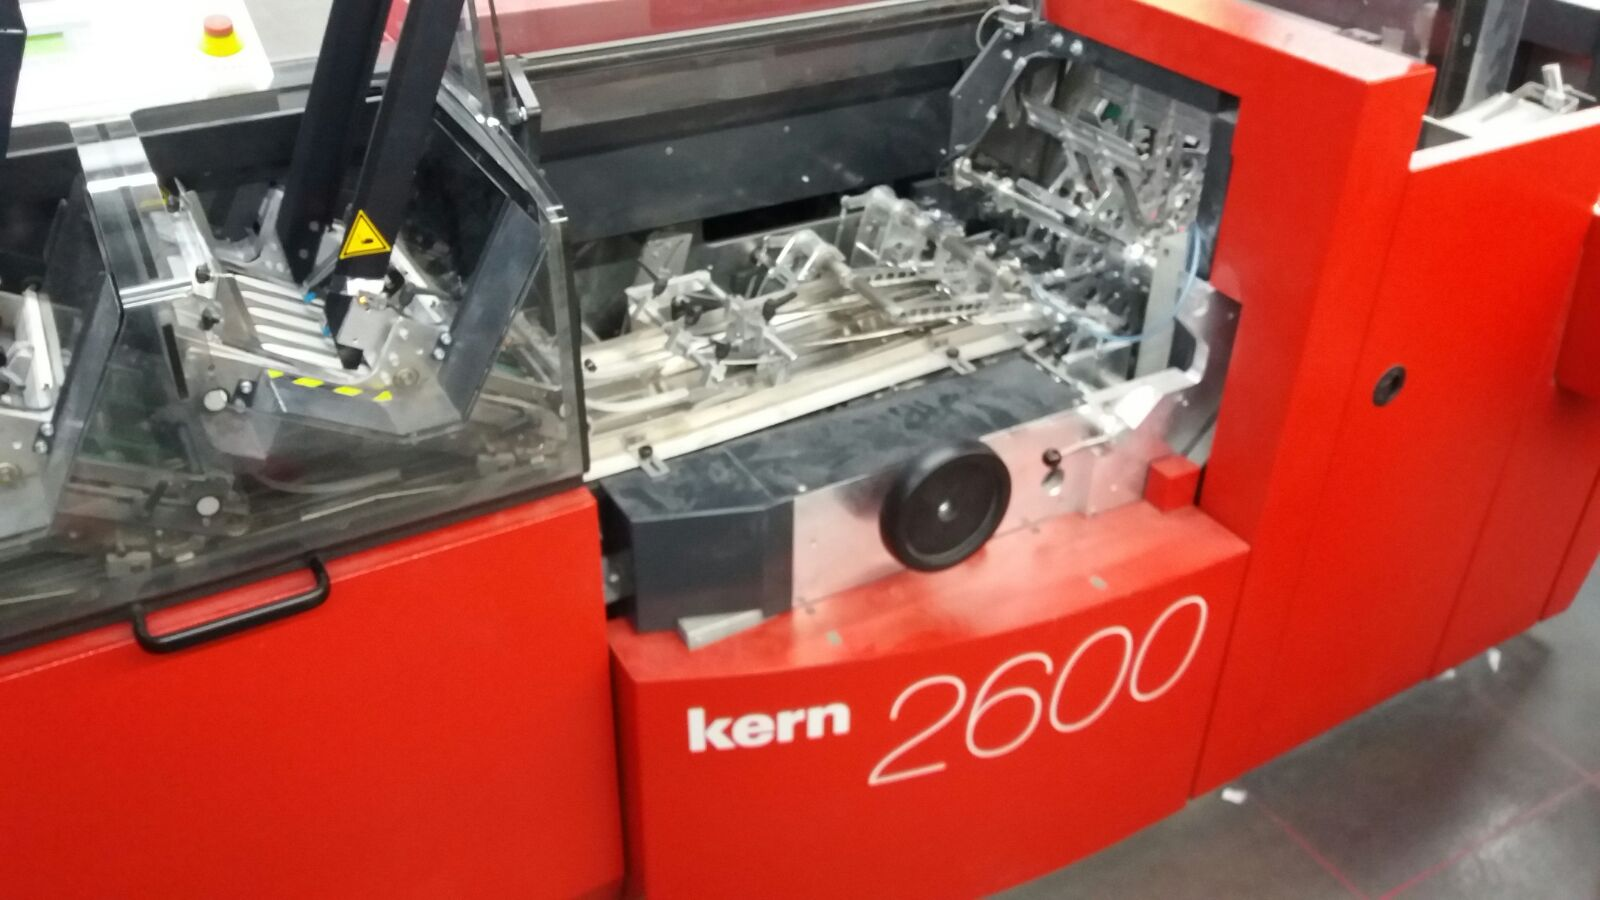 Kern 2600 Cut sheet